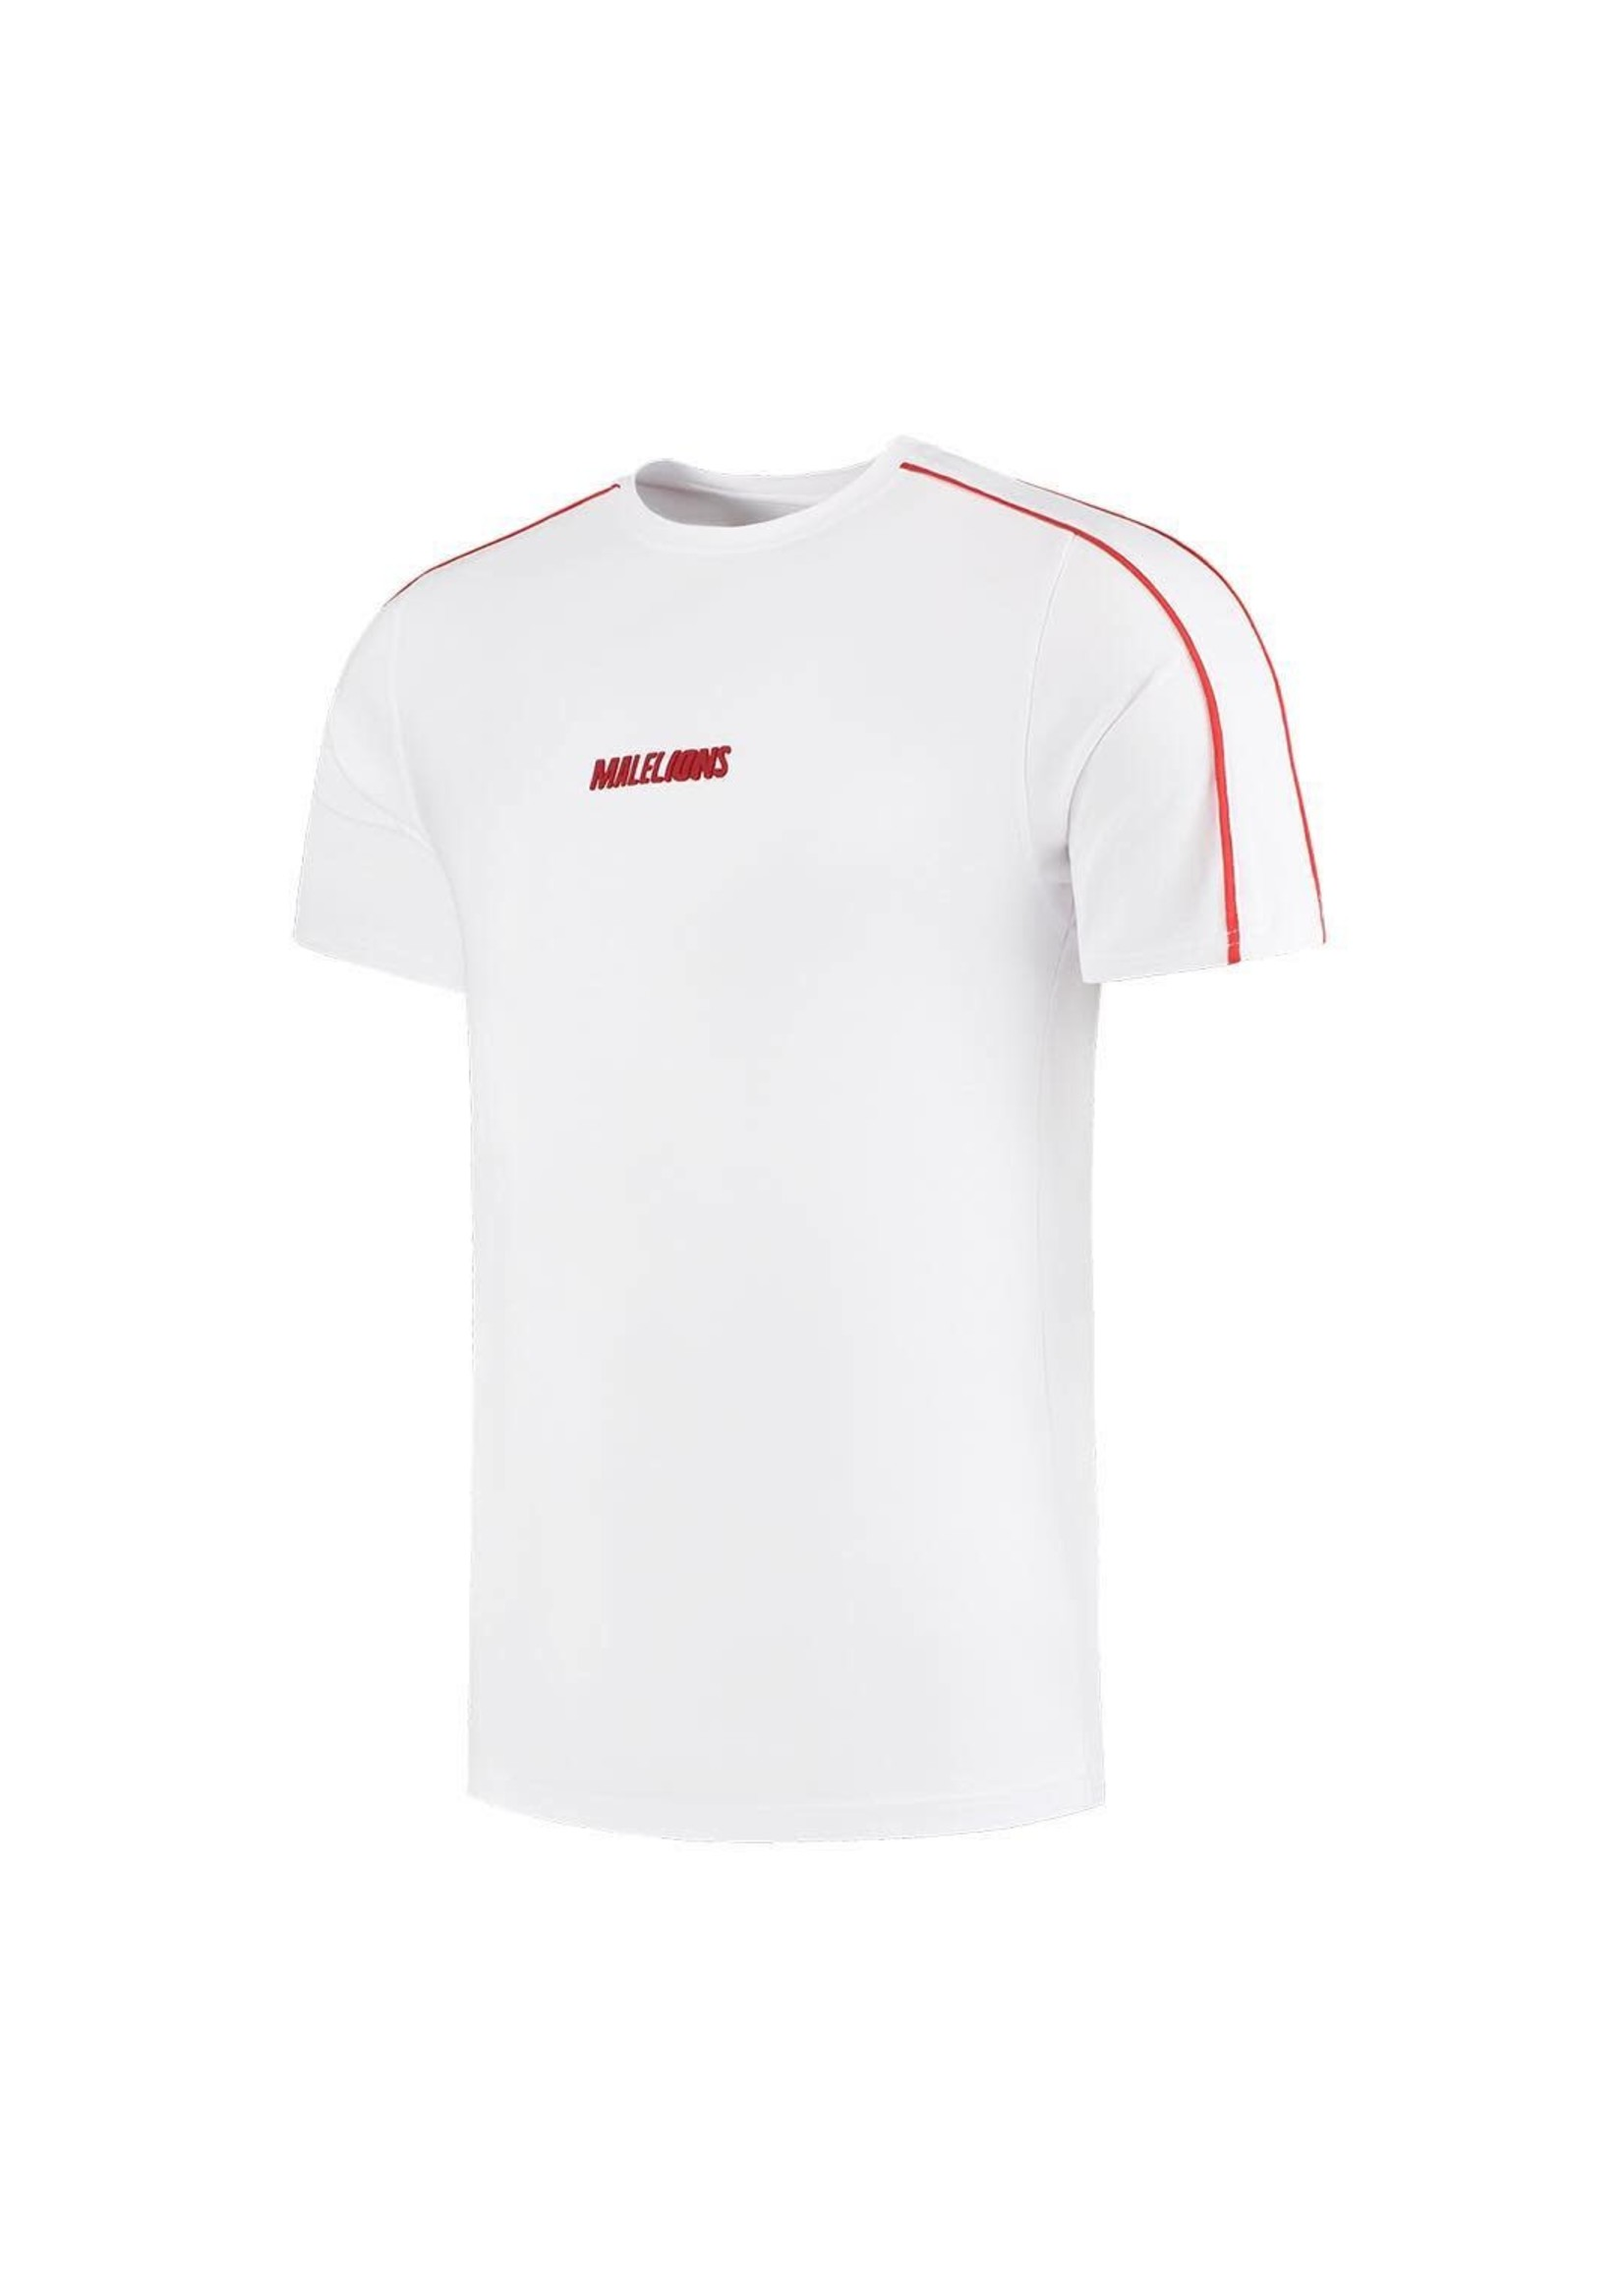 Malelions Malelions Junior Thies T-Shirt - White/Red